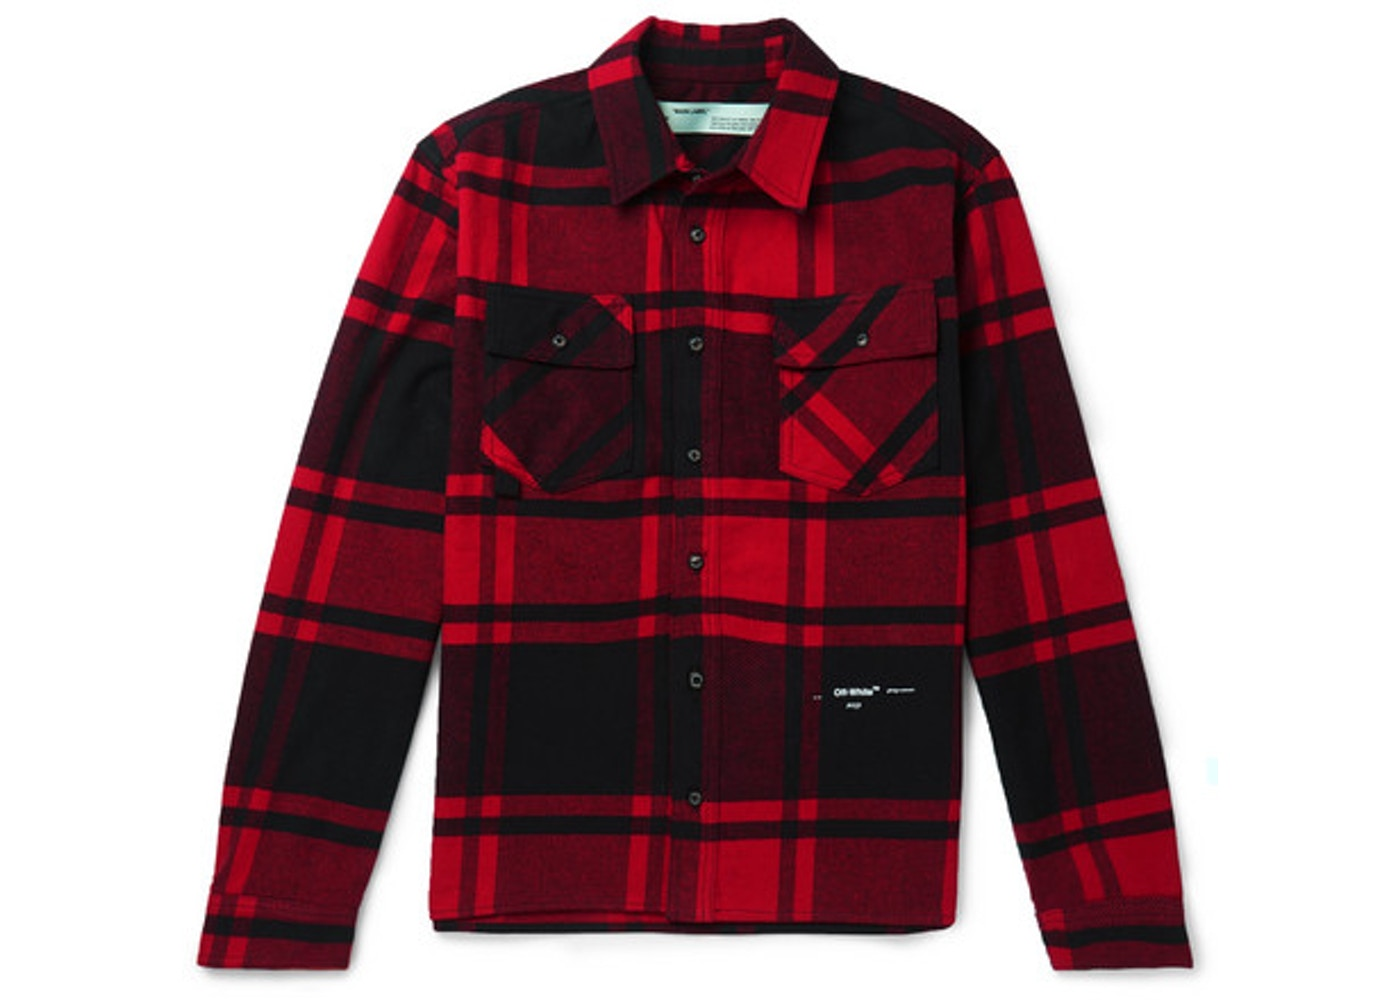 4647a840 OFF-WHITE Embellished Checkered Flannel Shirt Black/Red/White. Embellished  Checkered Flannel